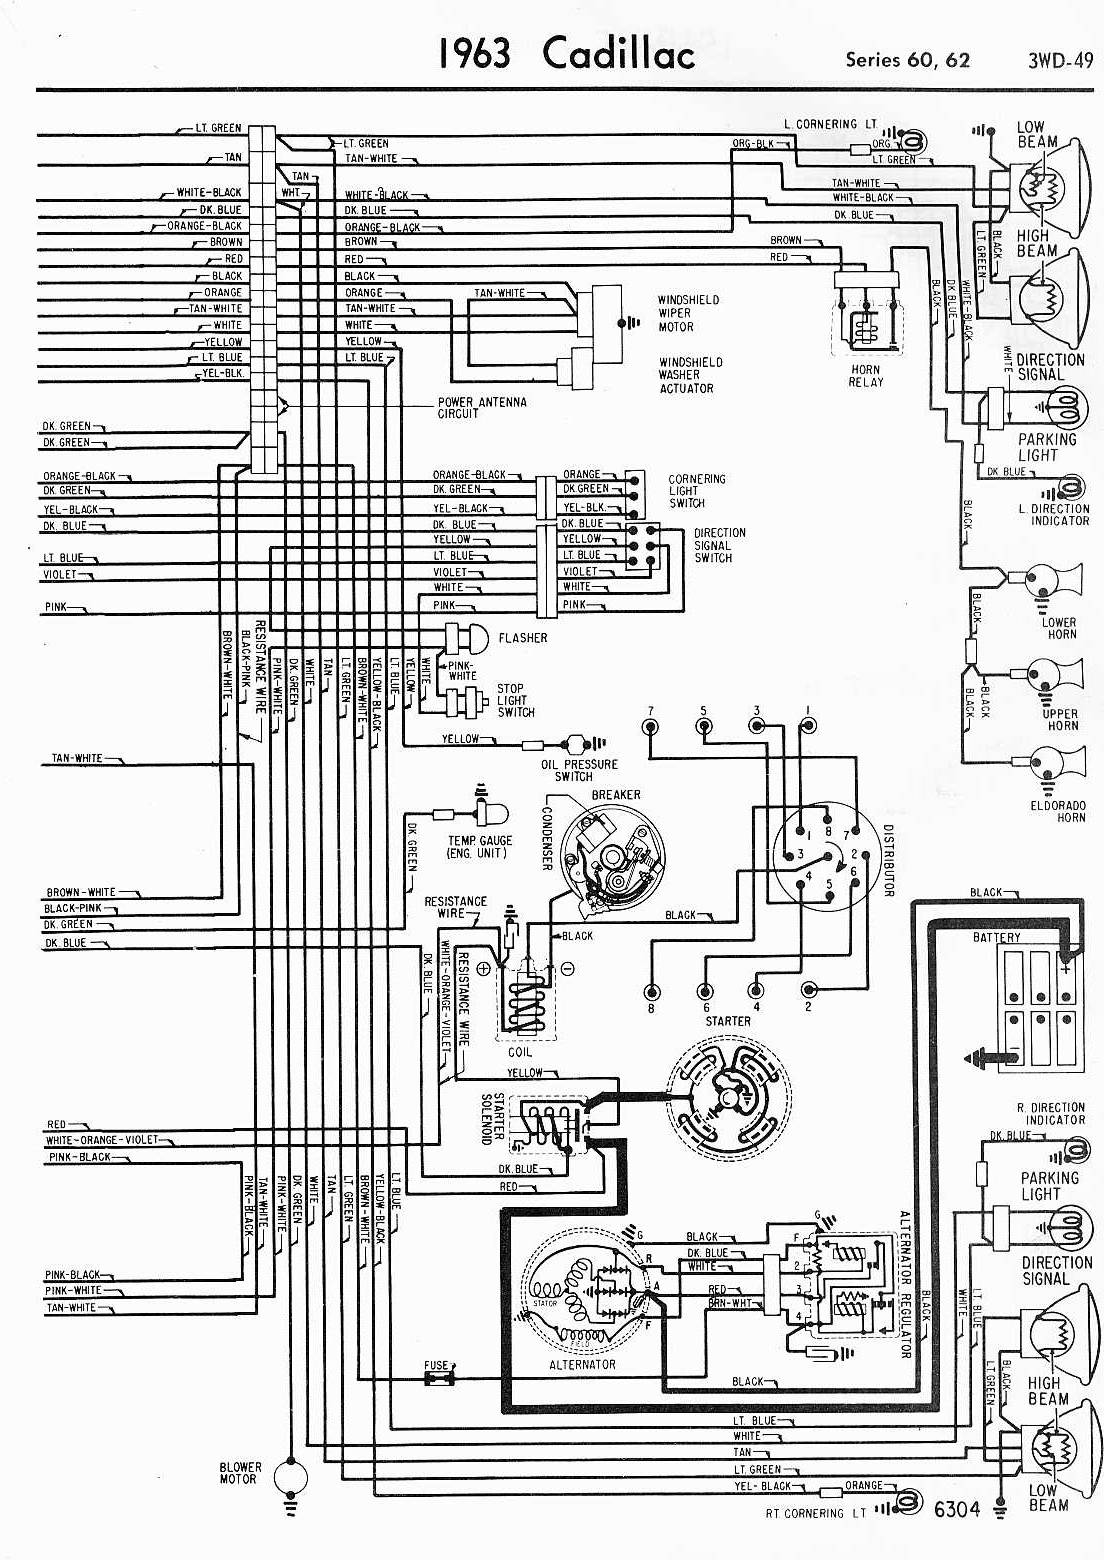 Cadillac Car Manuals Wiring Diagrams Pdf Fault Codes Diagram 1955 Download